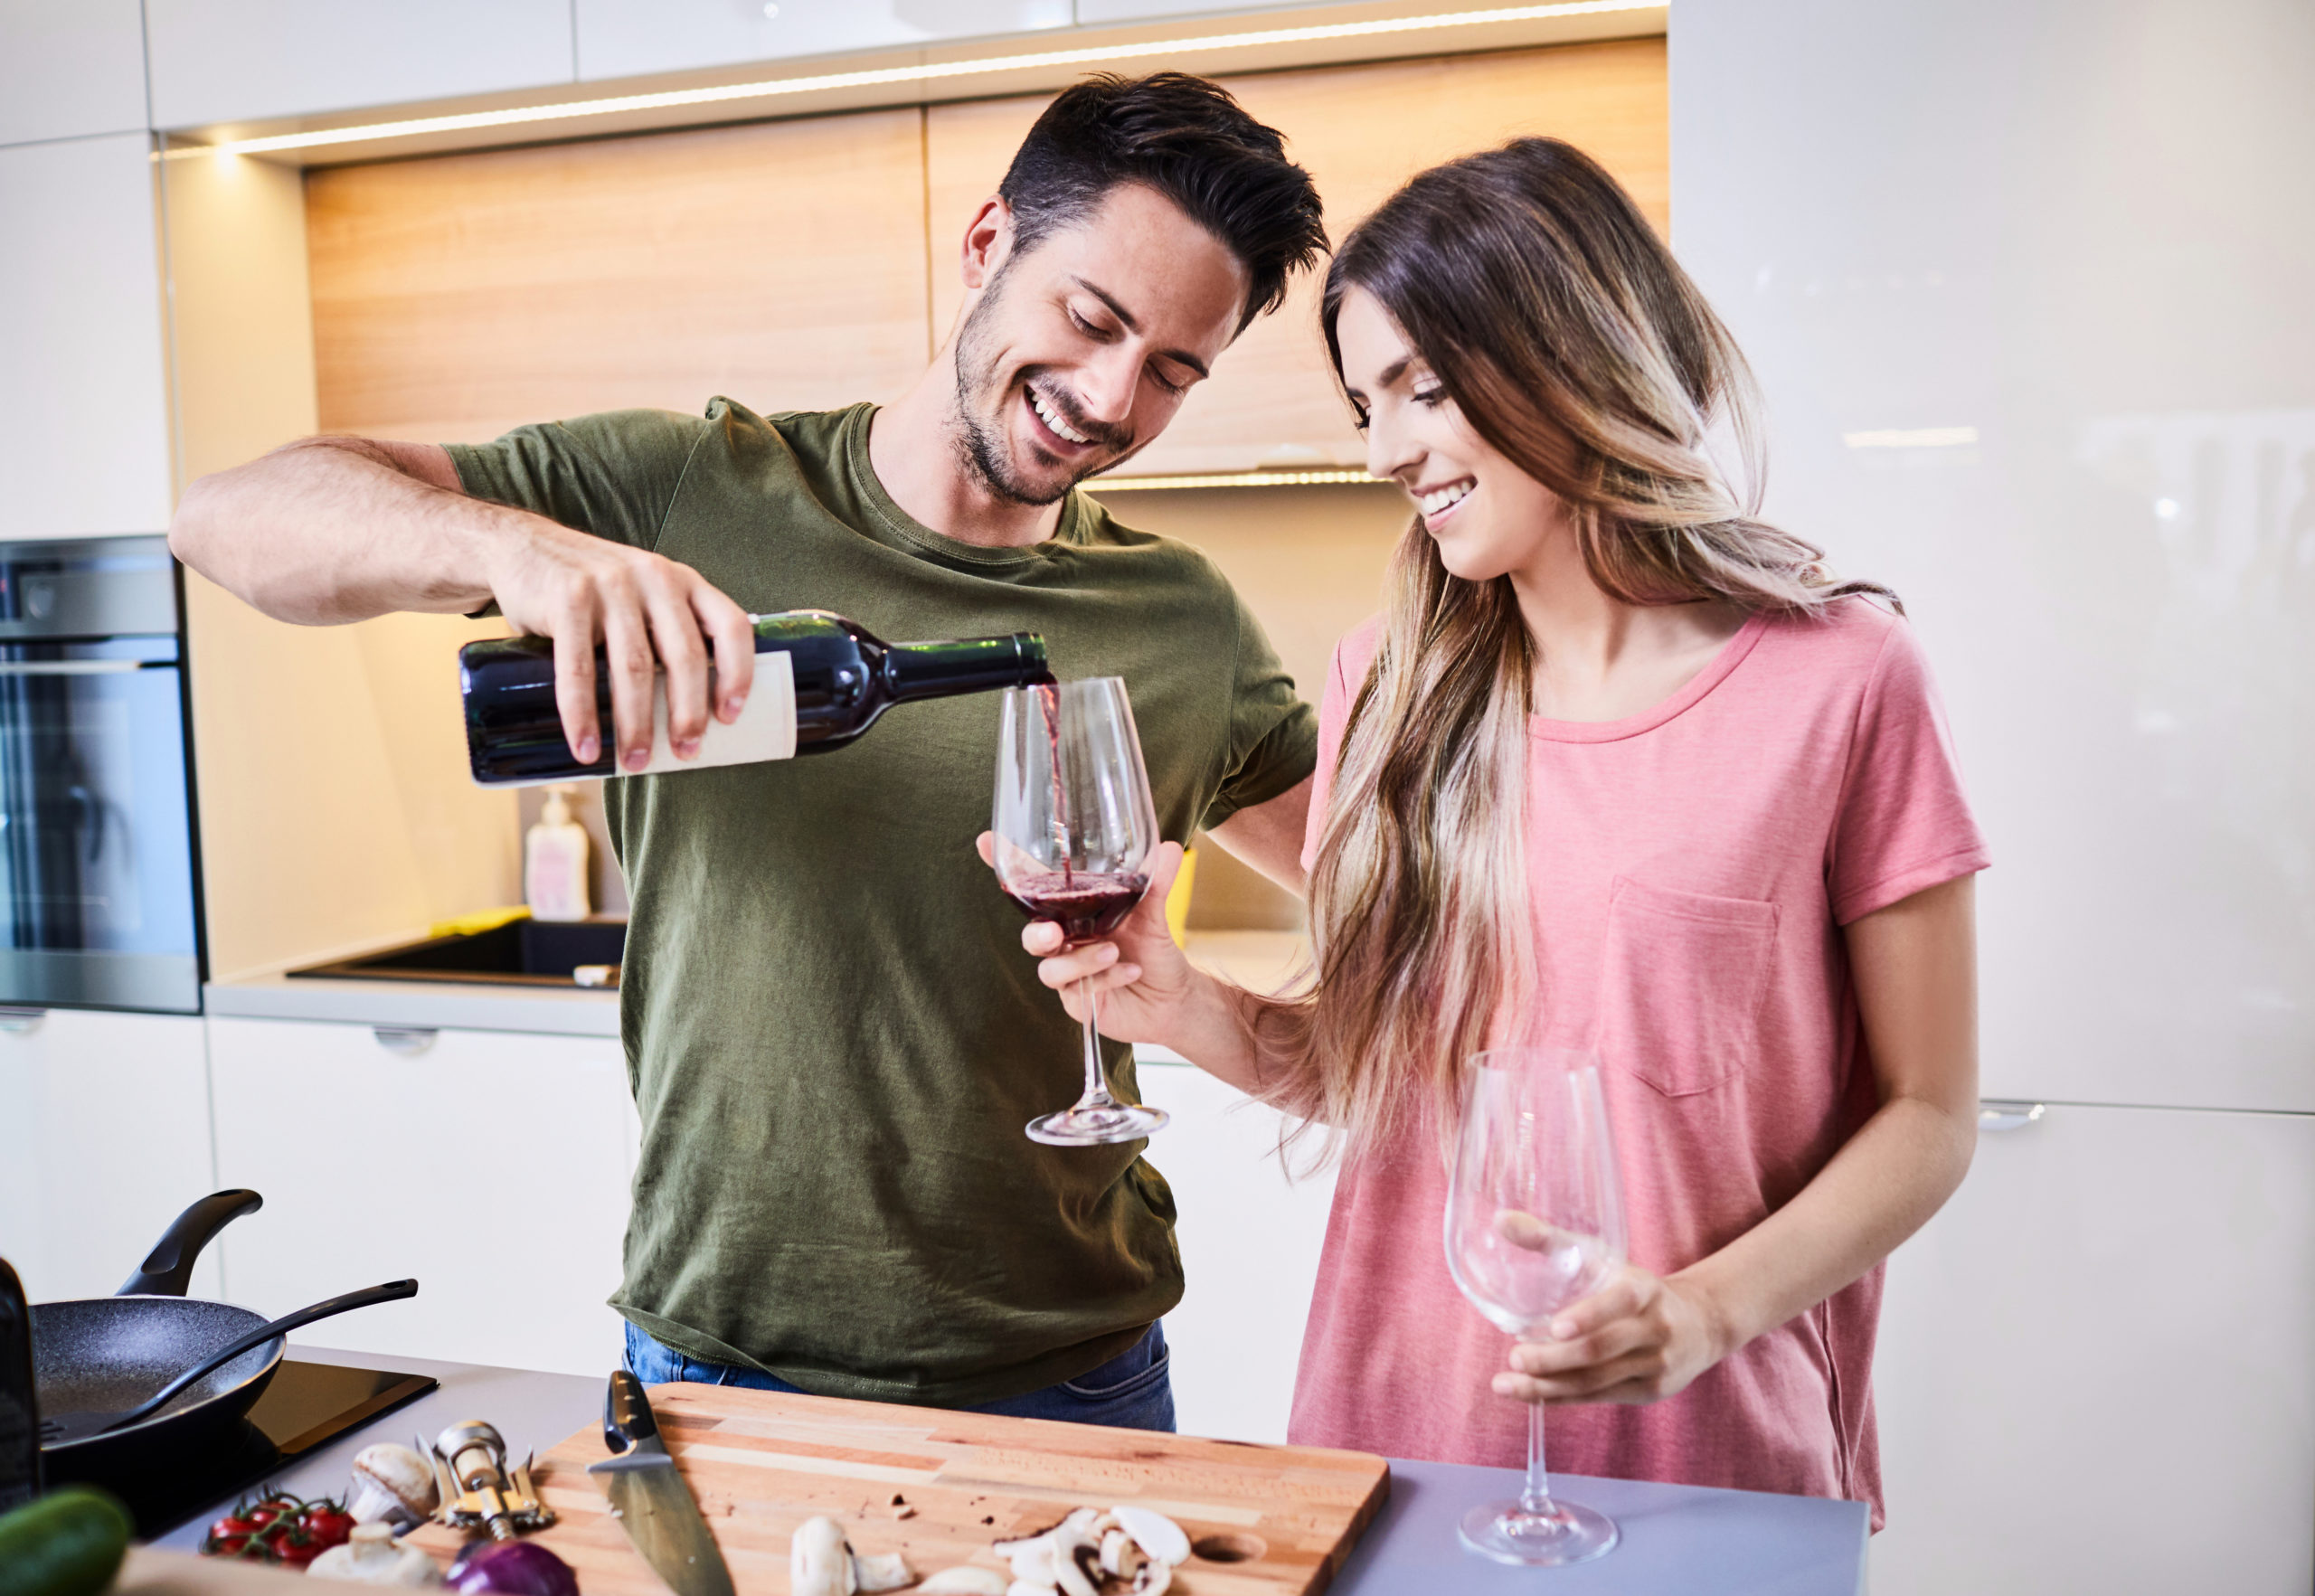 Young man pouring a glass of wine for his girlfriend in the kitchen